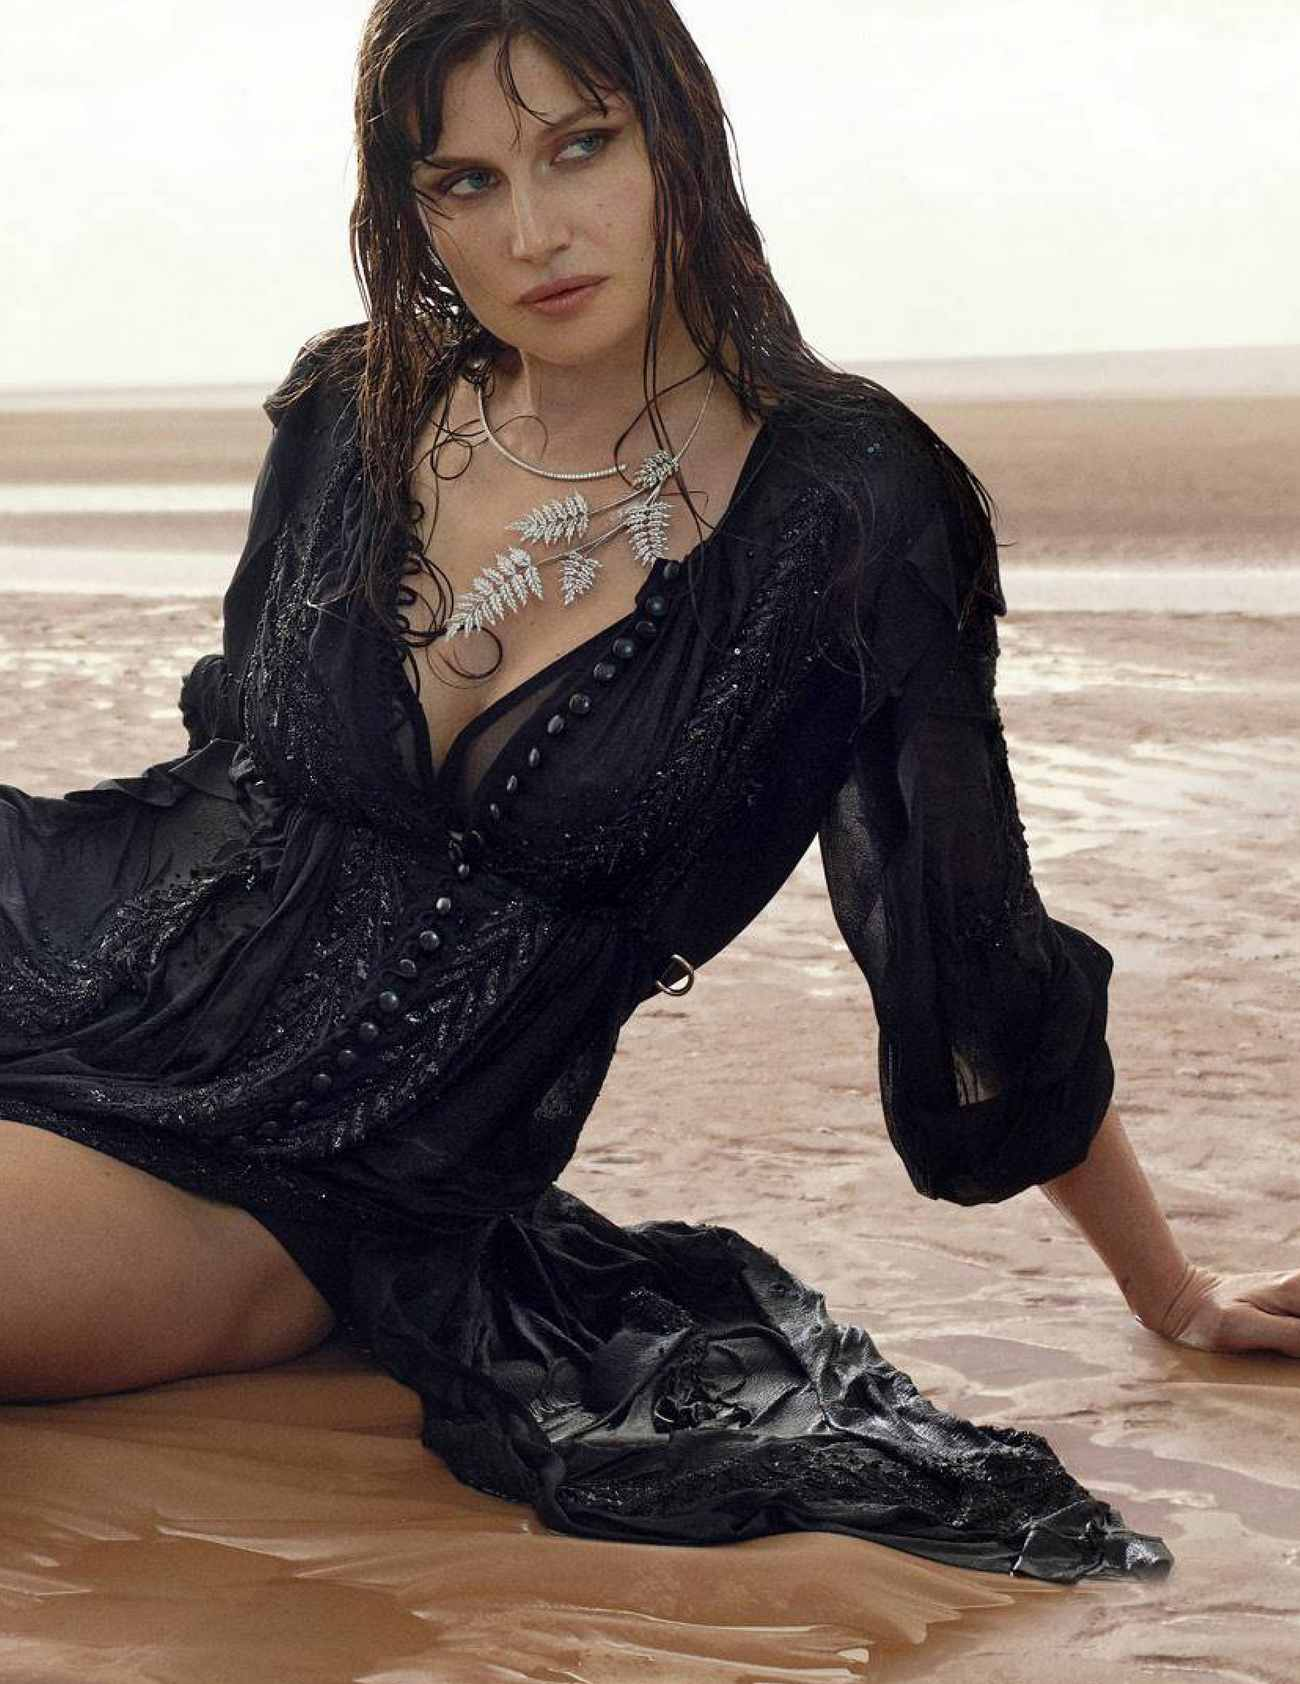 Laetitia-Casta-Madame-Figaro-18-May-201800003.jpg